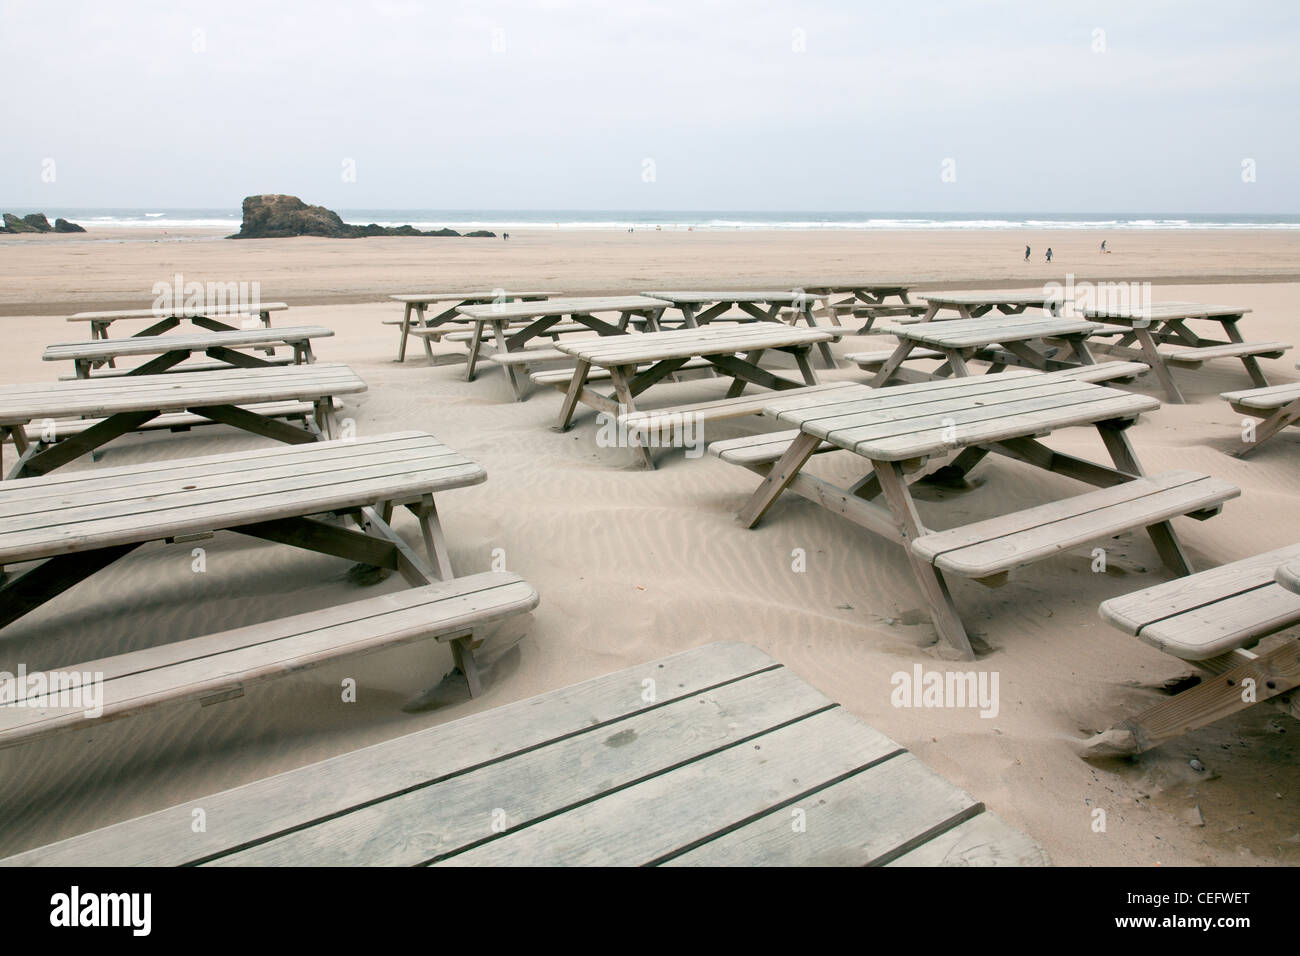 Perranporth, Cornwall, England the tables at The Watering Hole Bar, Pub on the beach looking out  to sea coast - Stock Image